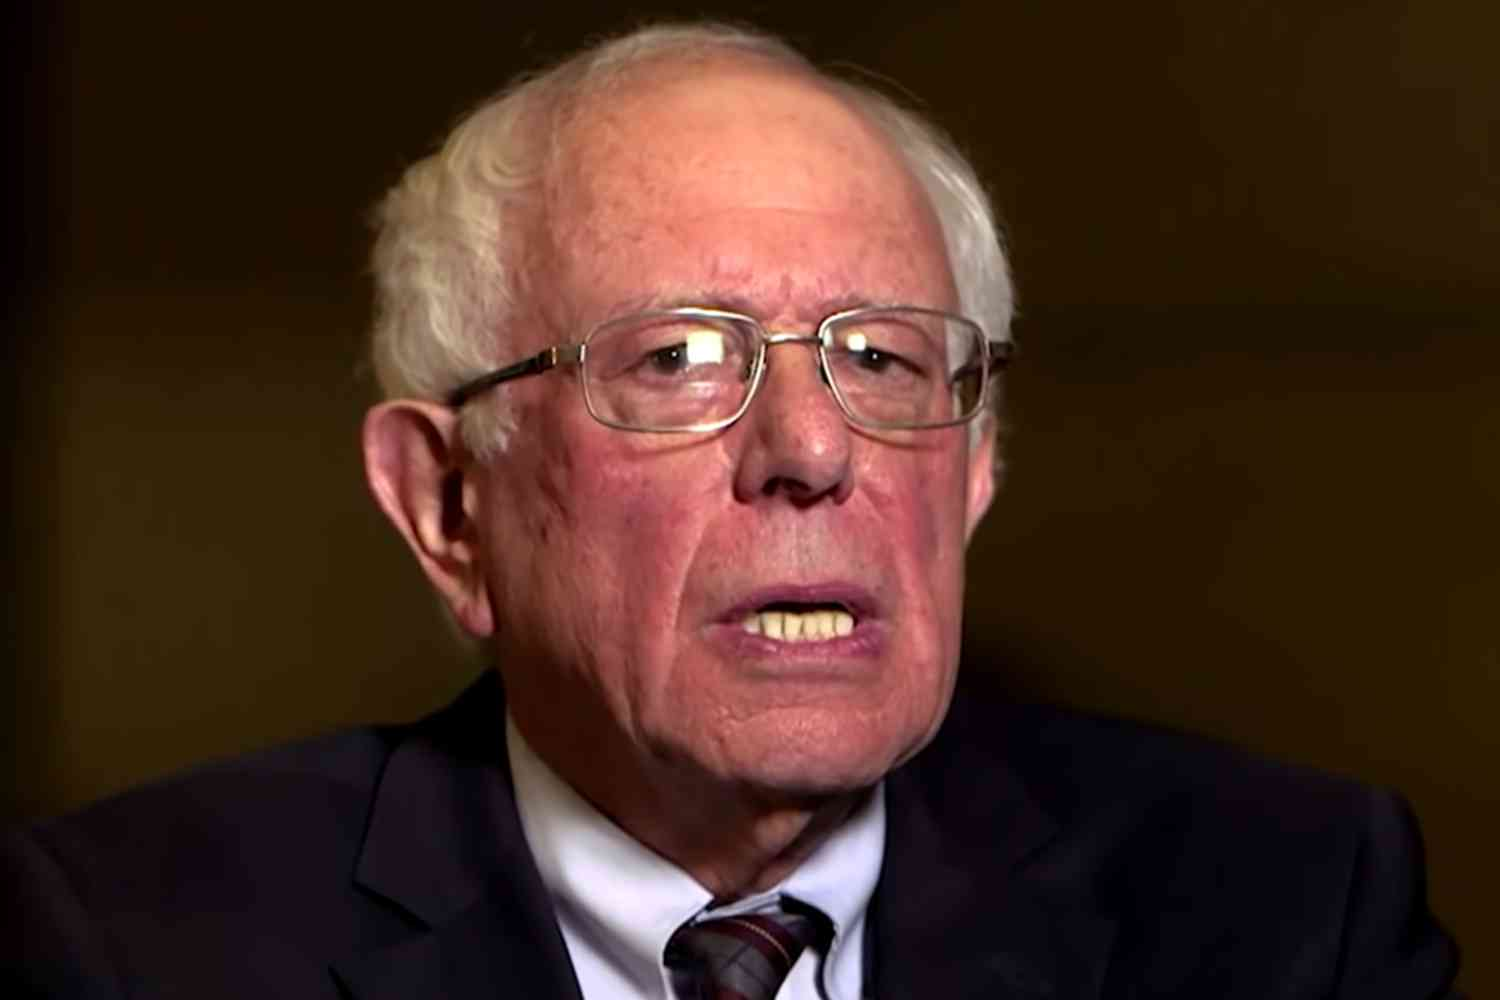 Sanders proposes $4.35T tax on assets, savings of America's wealthiest — on top of income tax